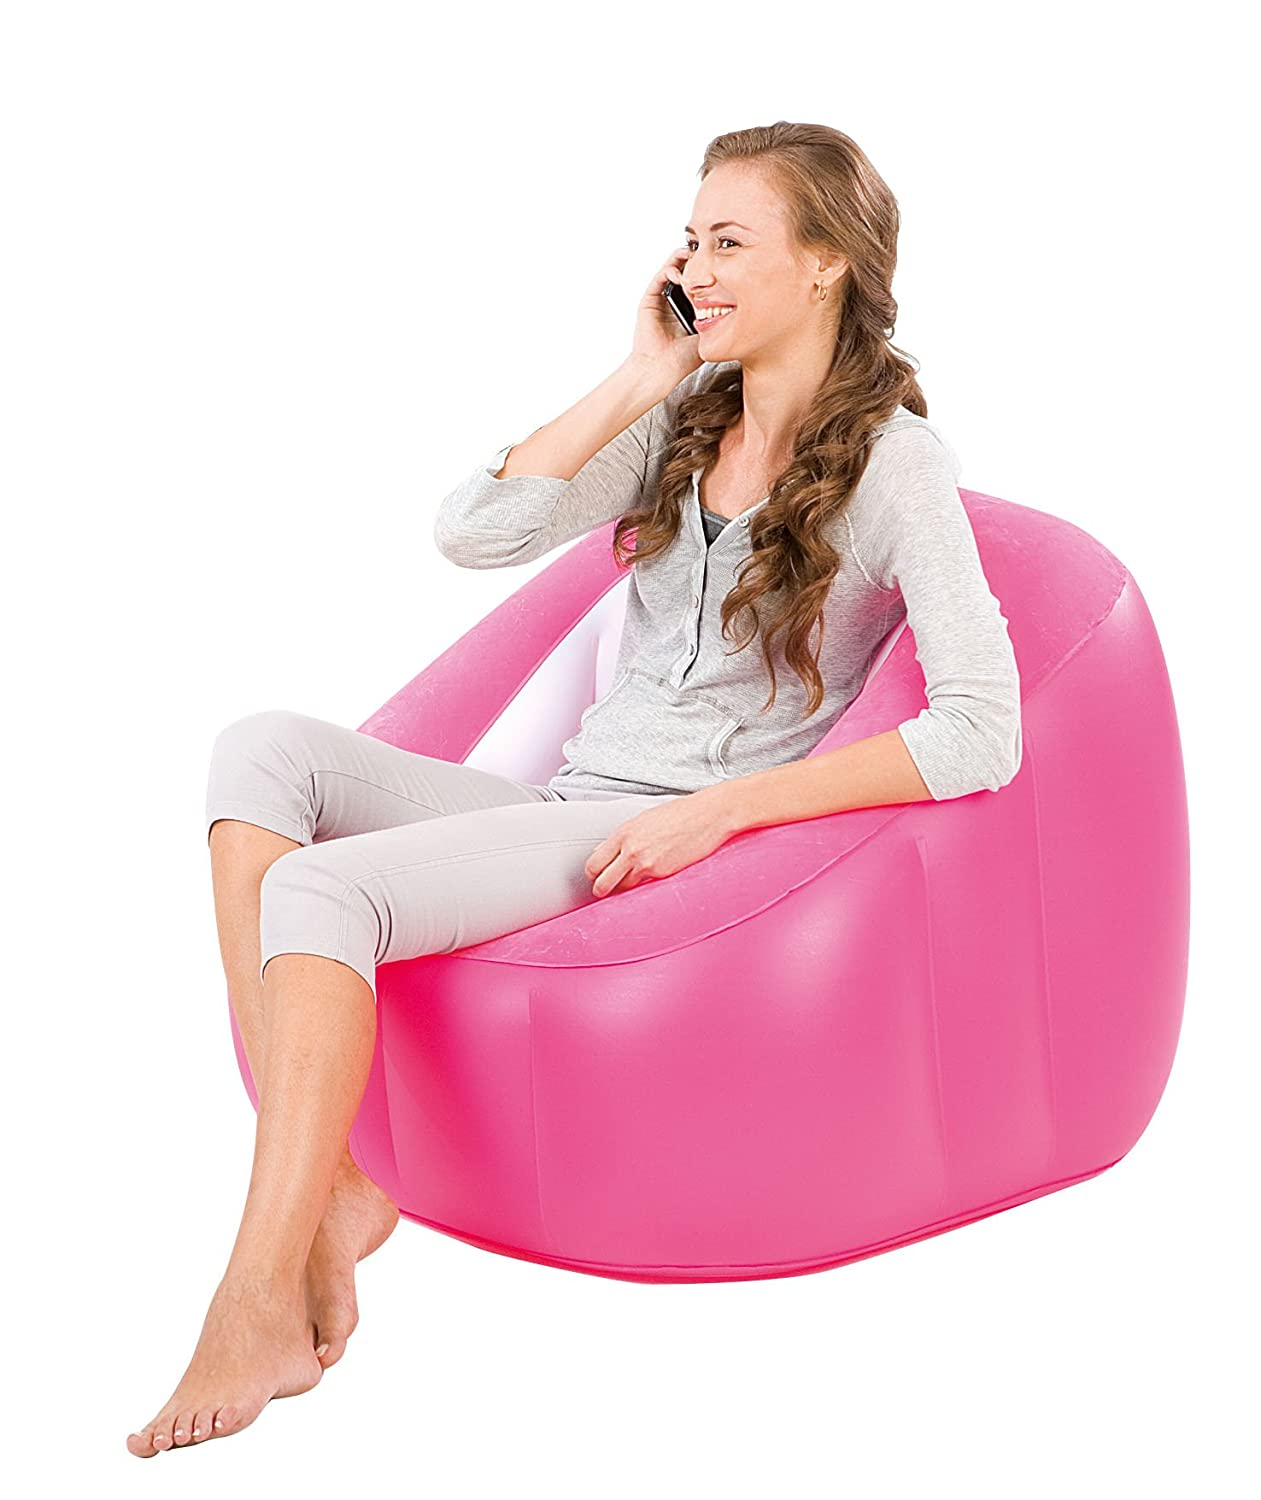 Bestway 75046 Comfort Quest Comfi Cube Inflatable Gaming Chair Sofa Seat Lounger PINK 75046B